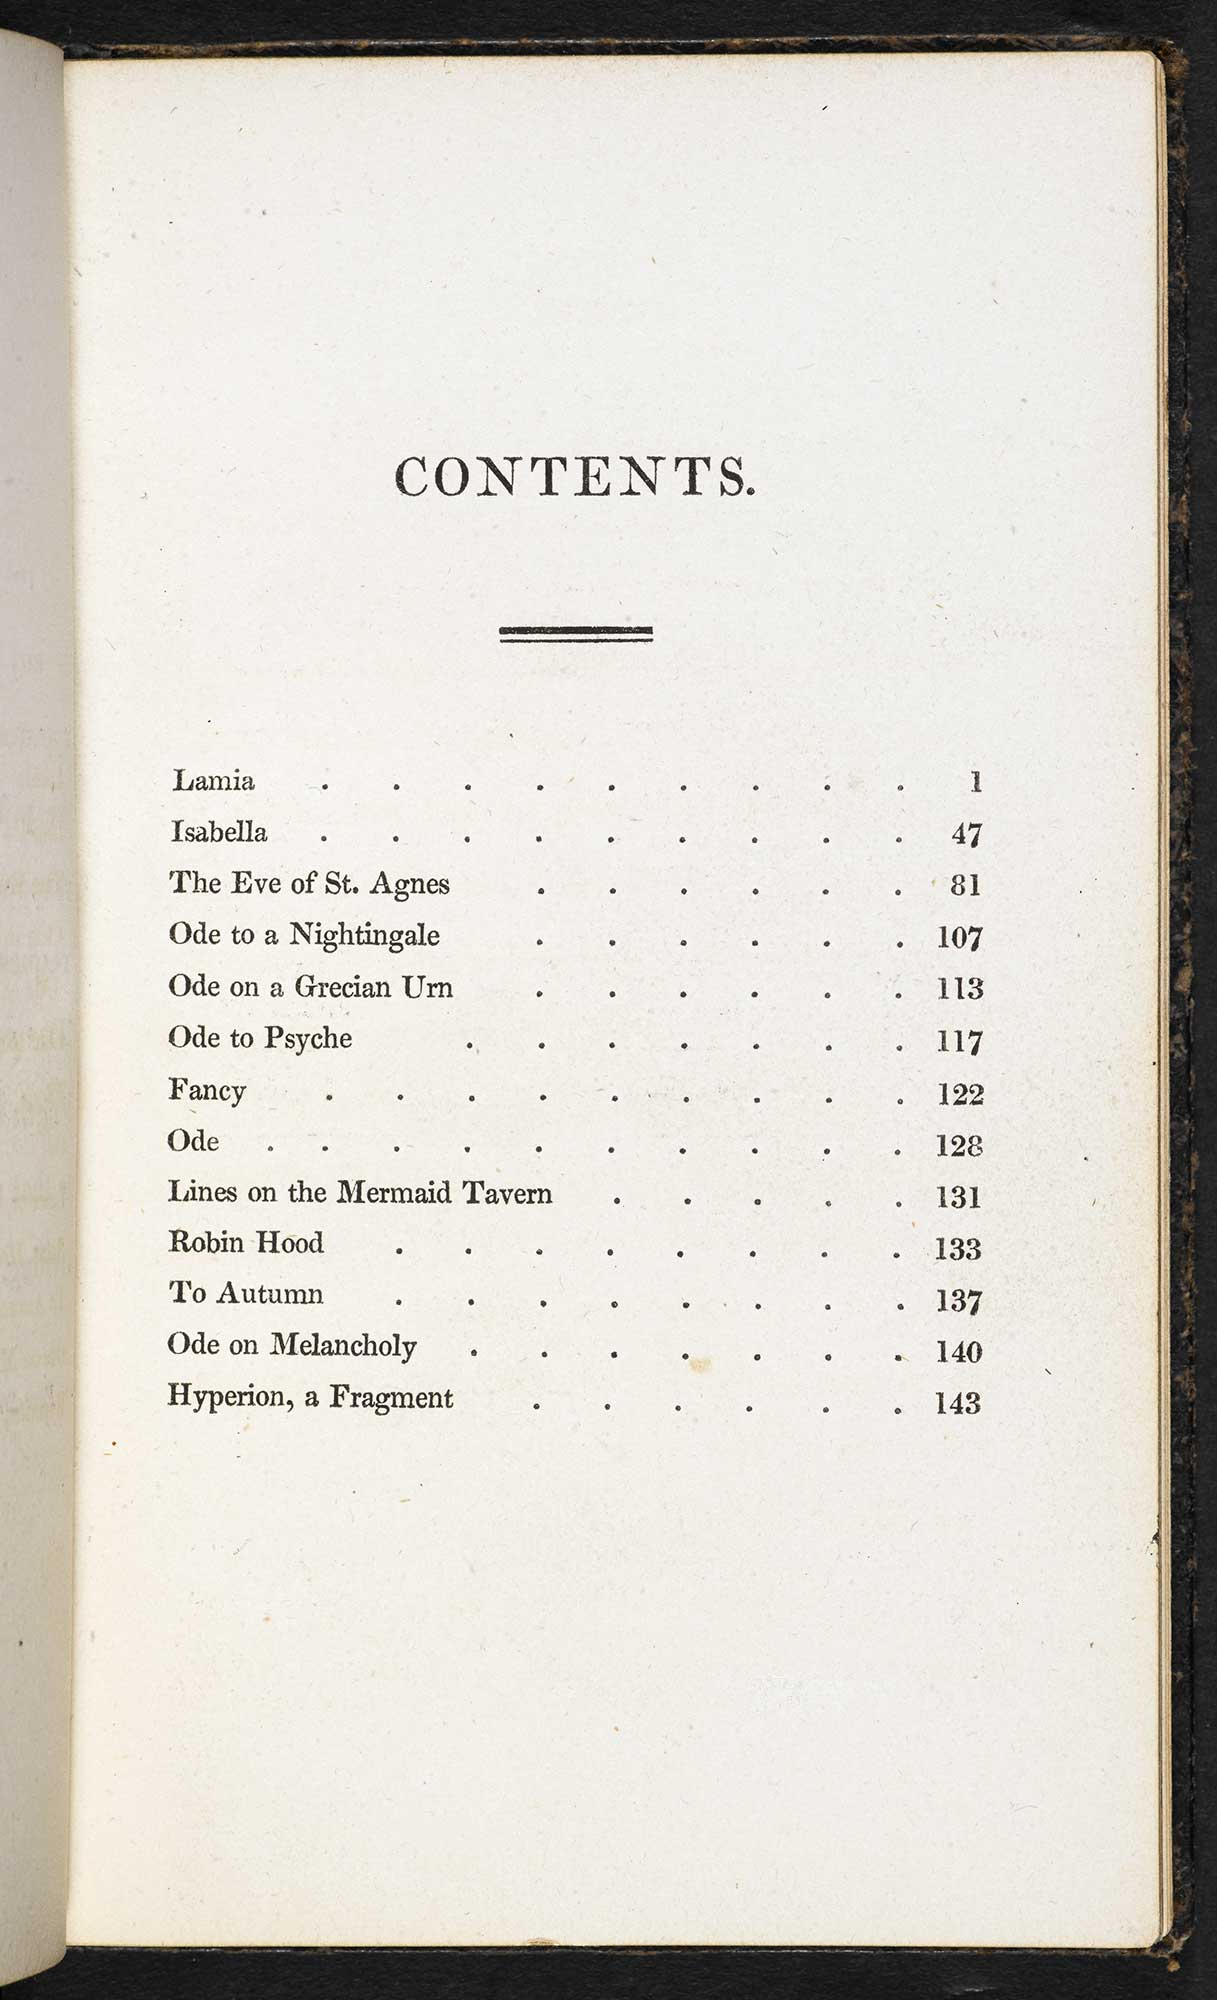 Contents page for Keats's 1820 collection. Click to enlarge.